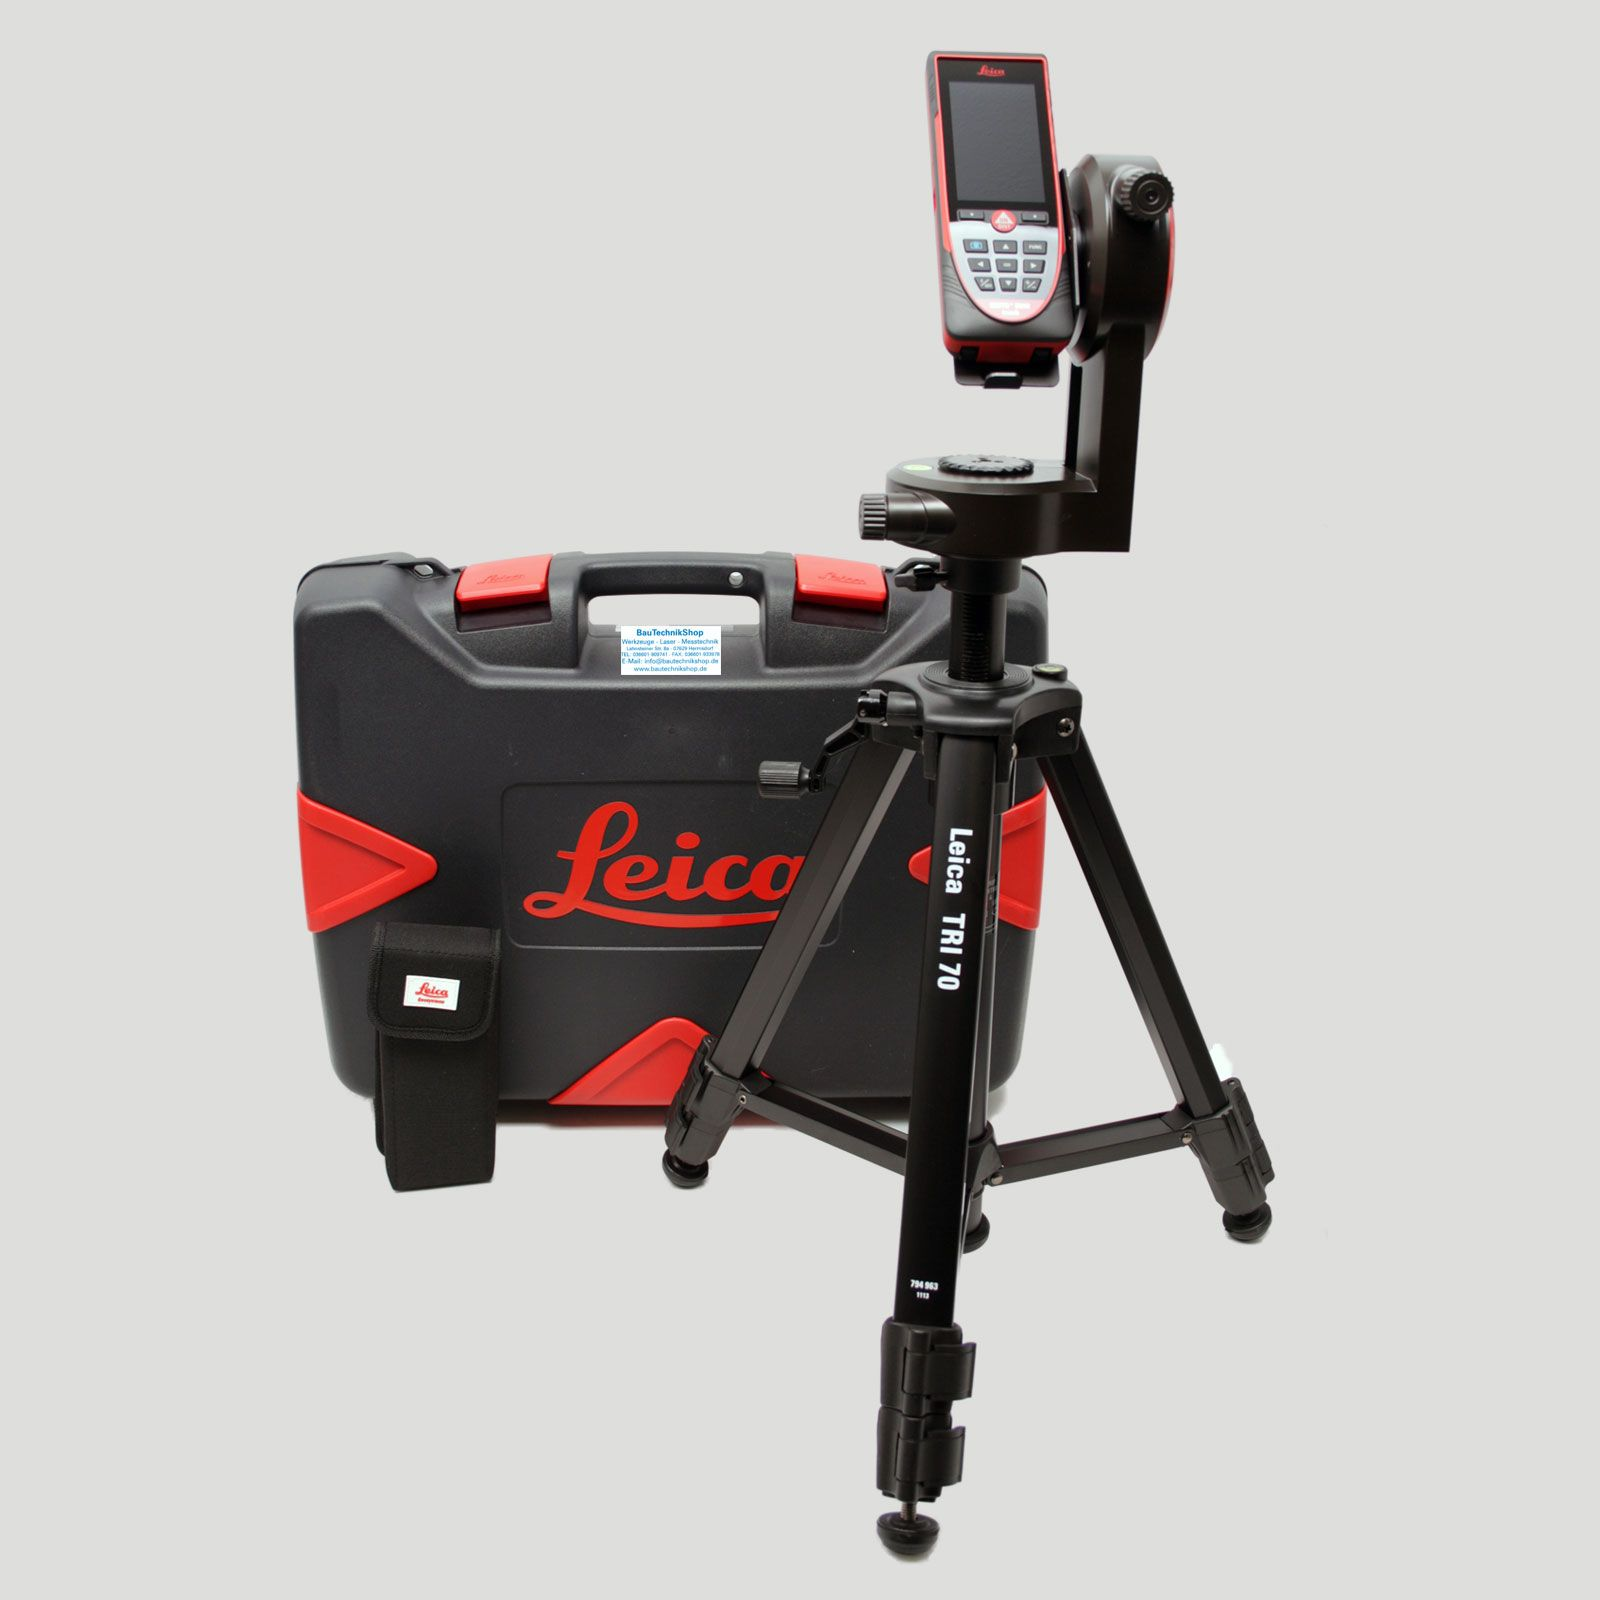 leica disto d810 touch fta 360 package inkl leica tri70 859 99 eur. Black Bedroom Furniture Sets. Home Design Ideas